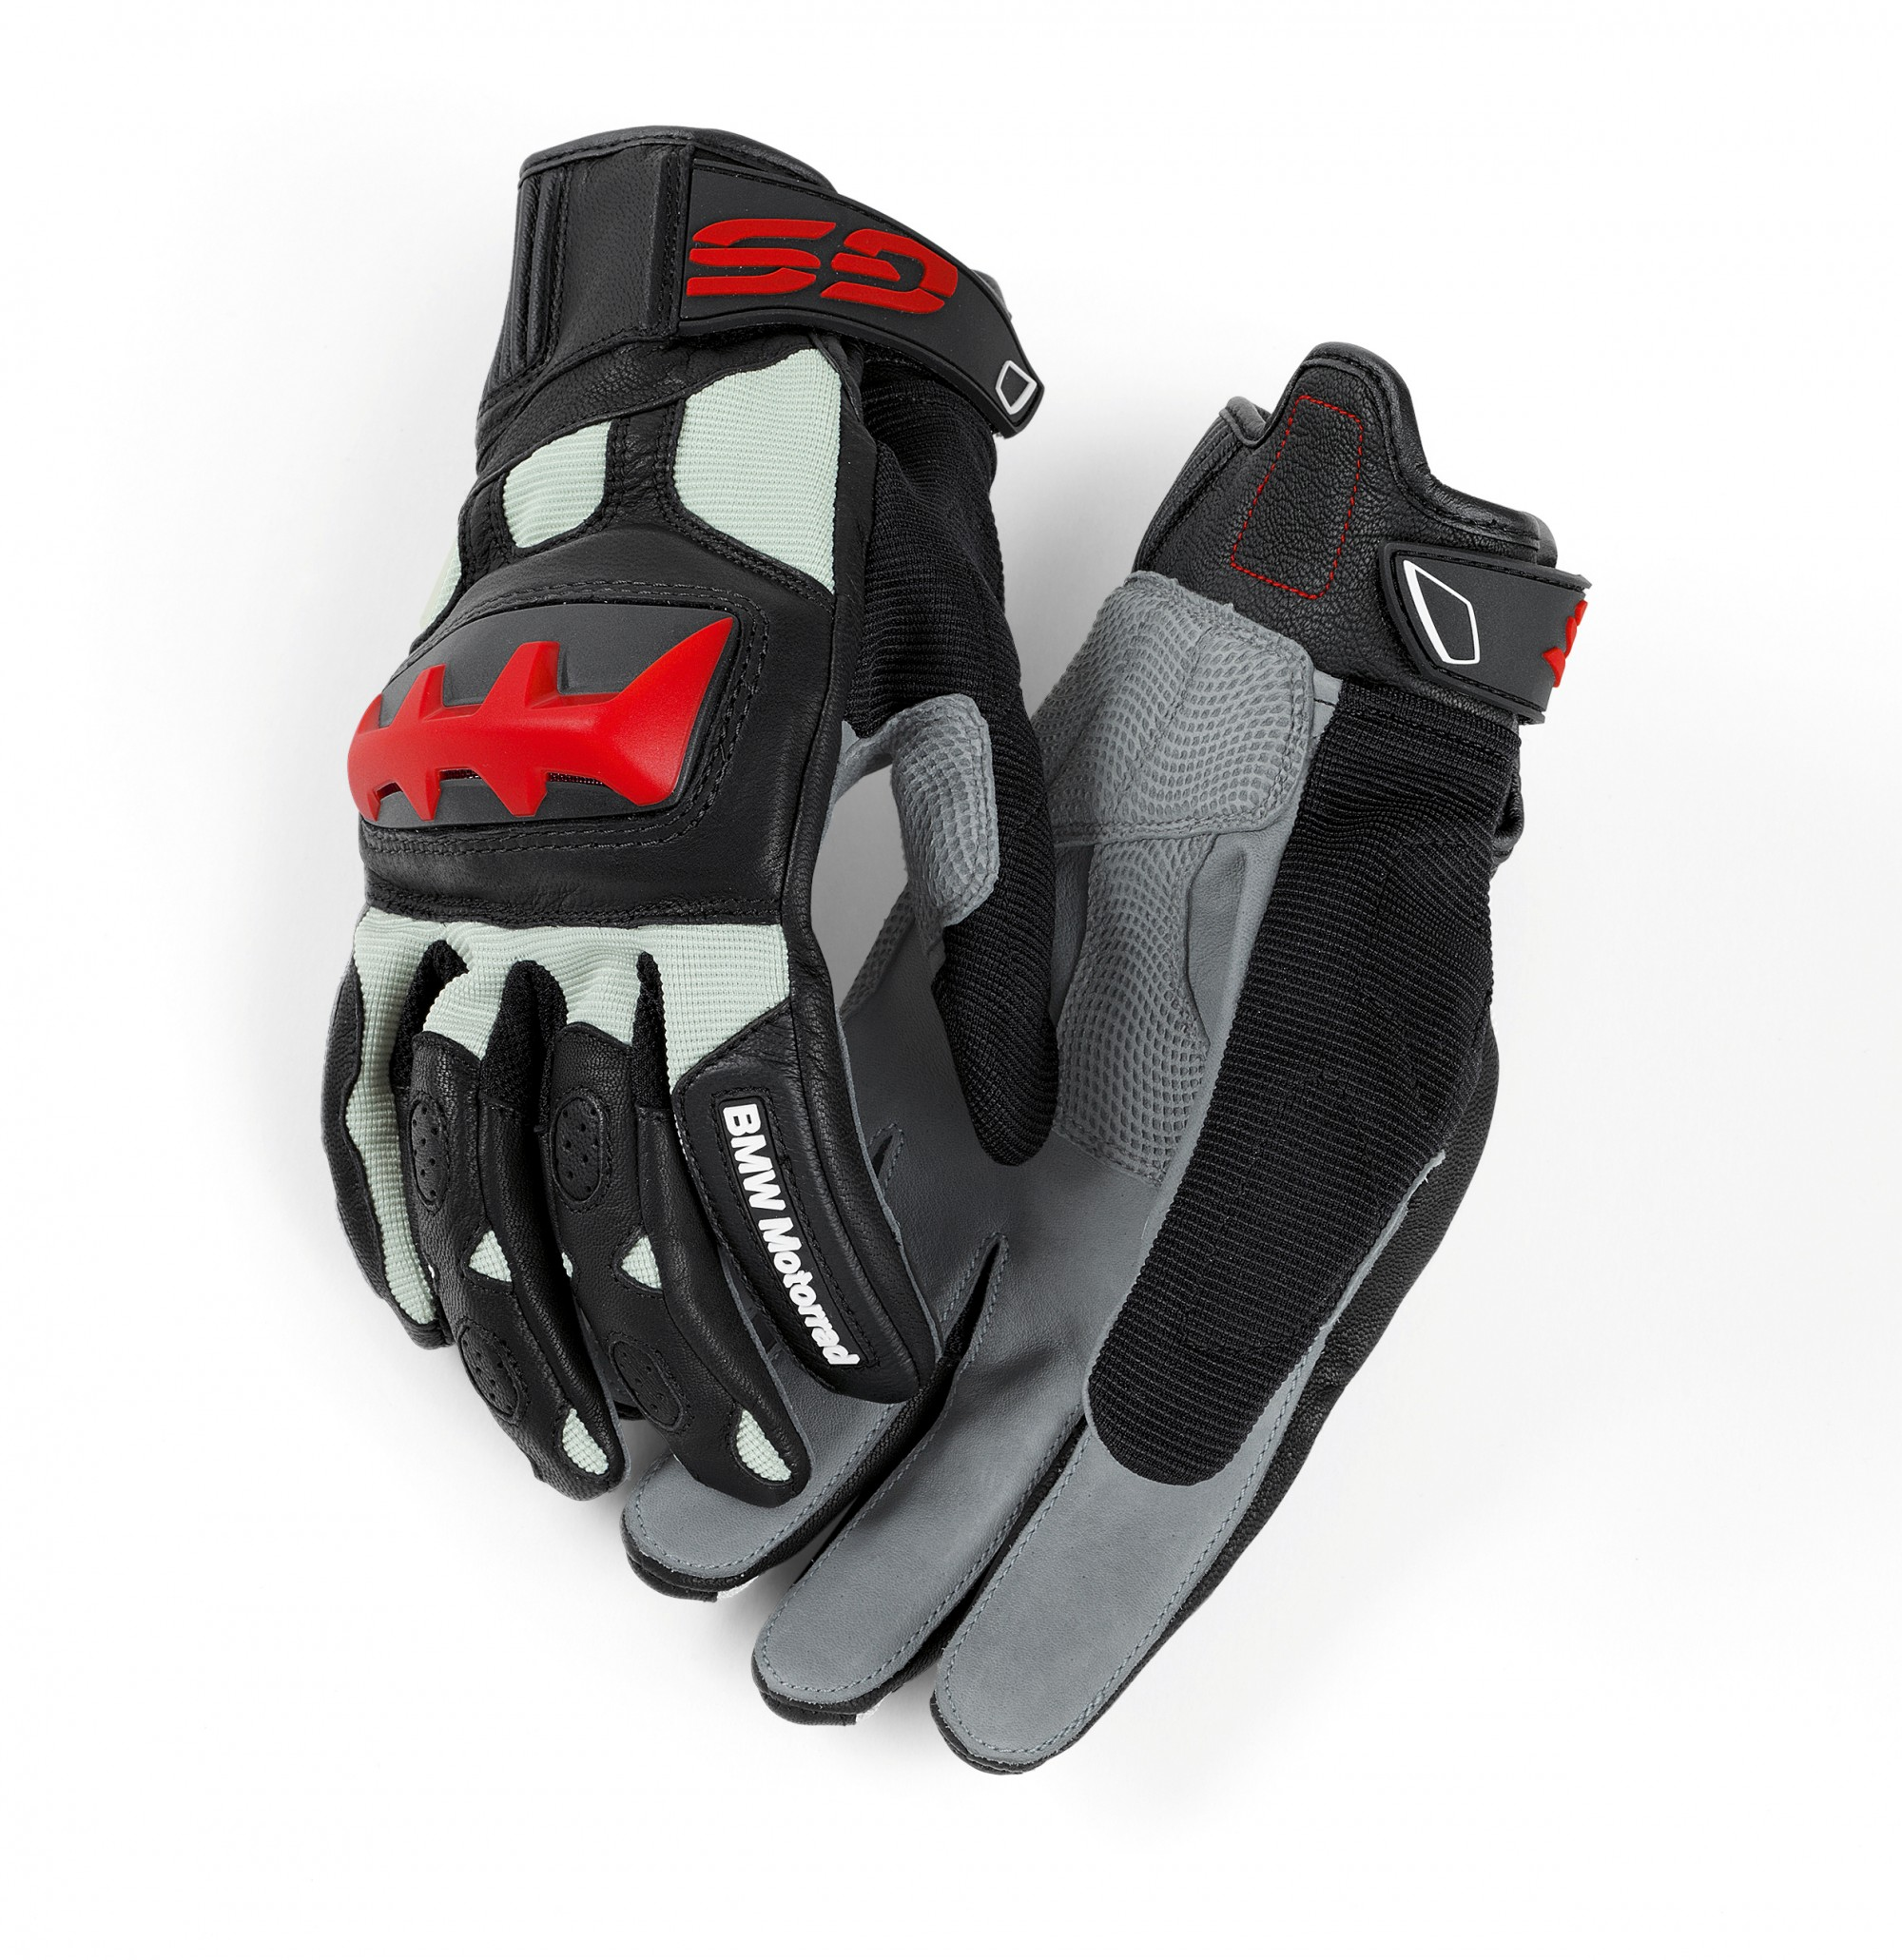 Мотоперчатки BMW Motorrad Rallye Gloves, Black/Red